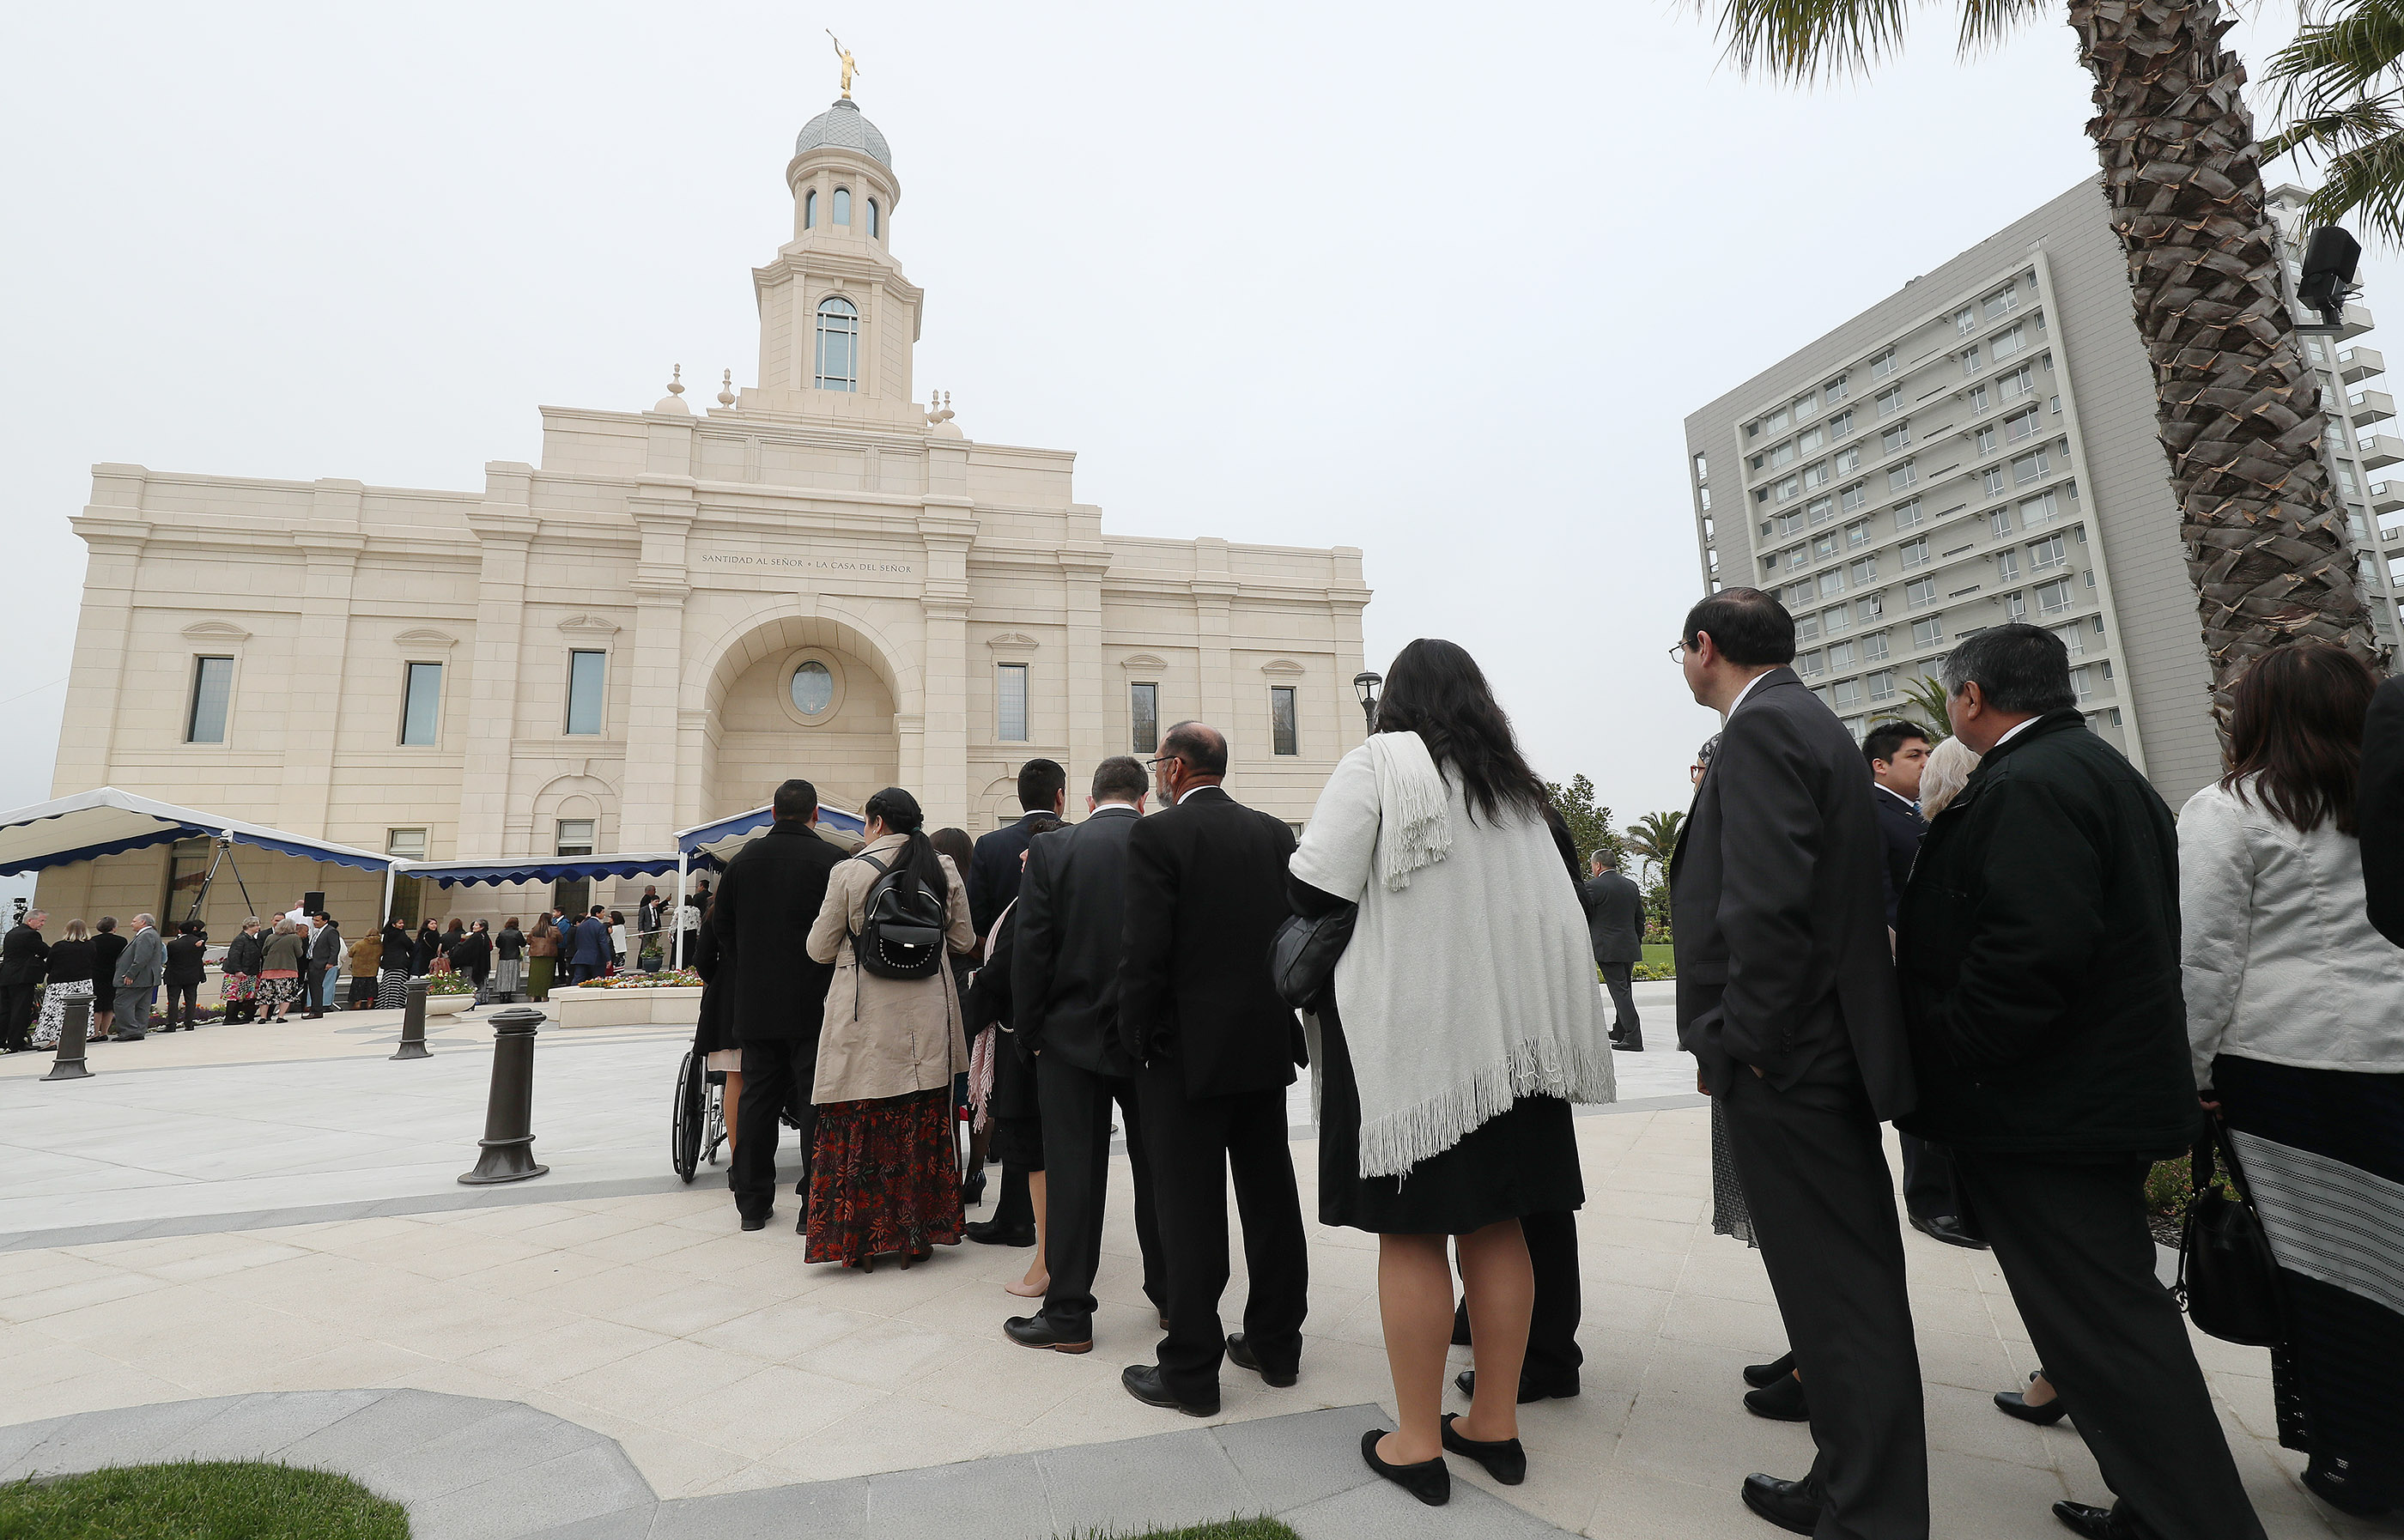 Attendees line up during the dedication of the LDS Concepcion Chili Temple in Concepcion, Chili on Sunday, Oct. 28, 2018.